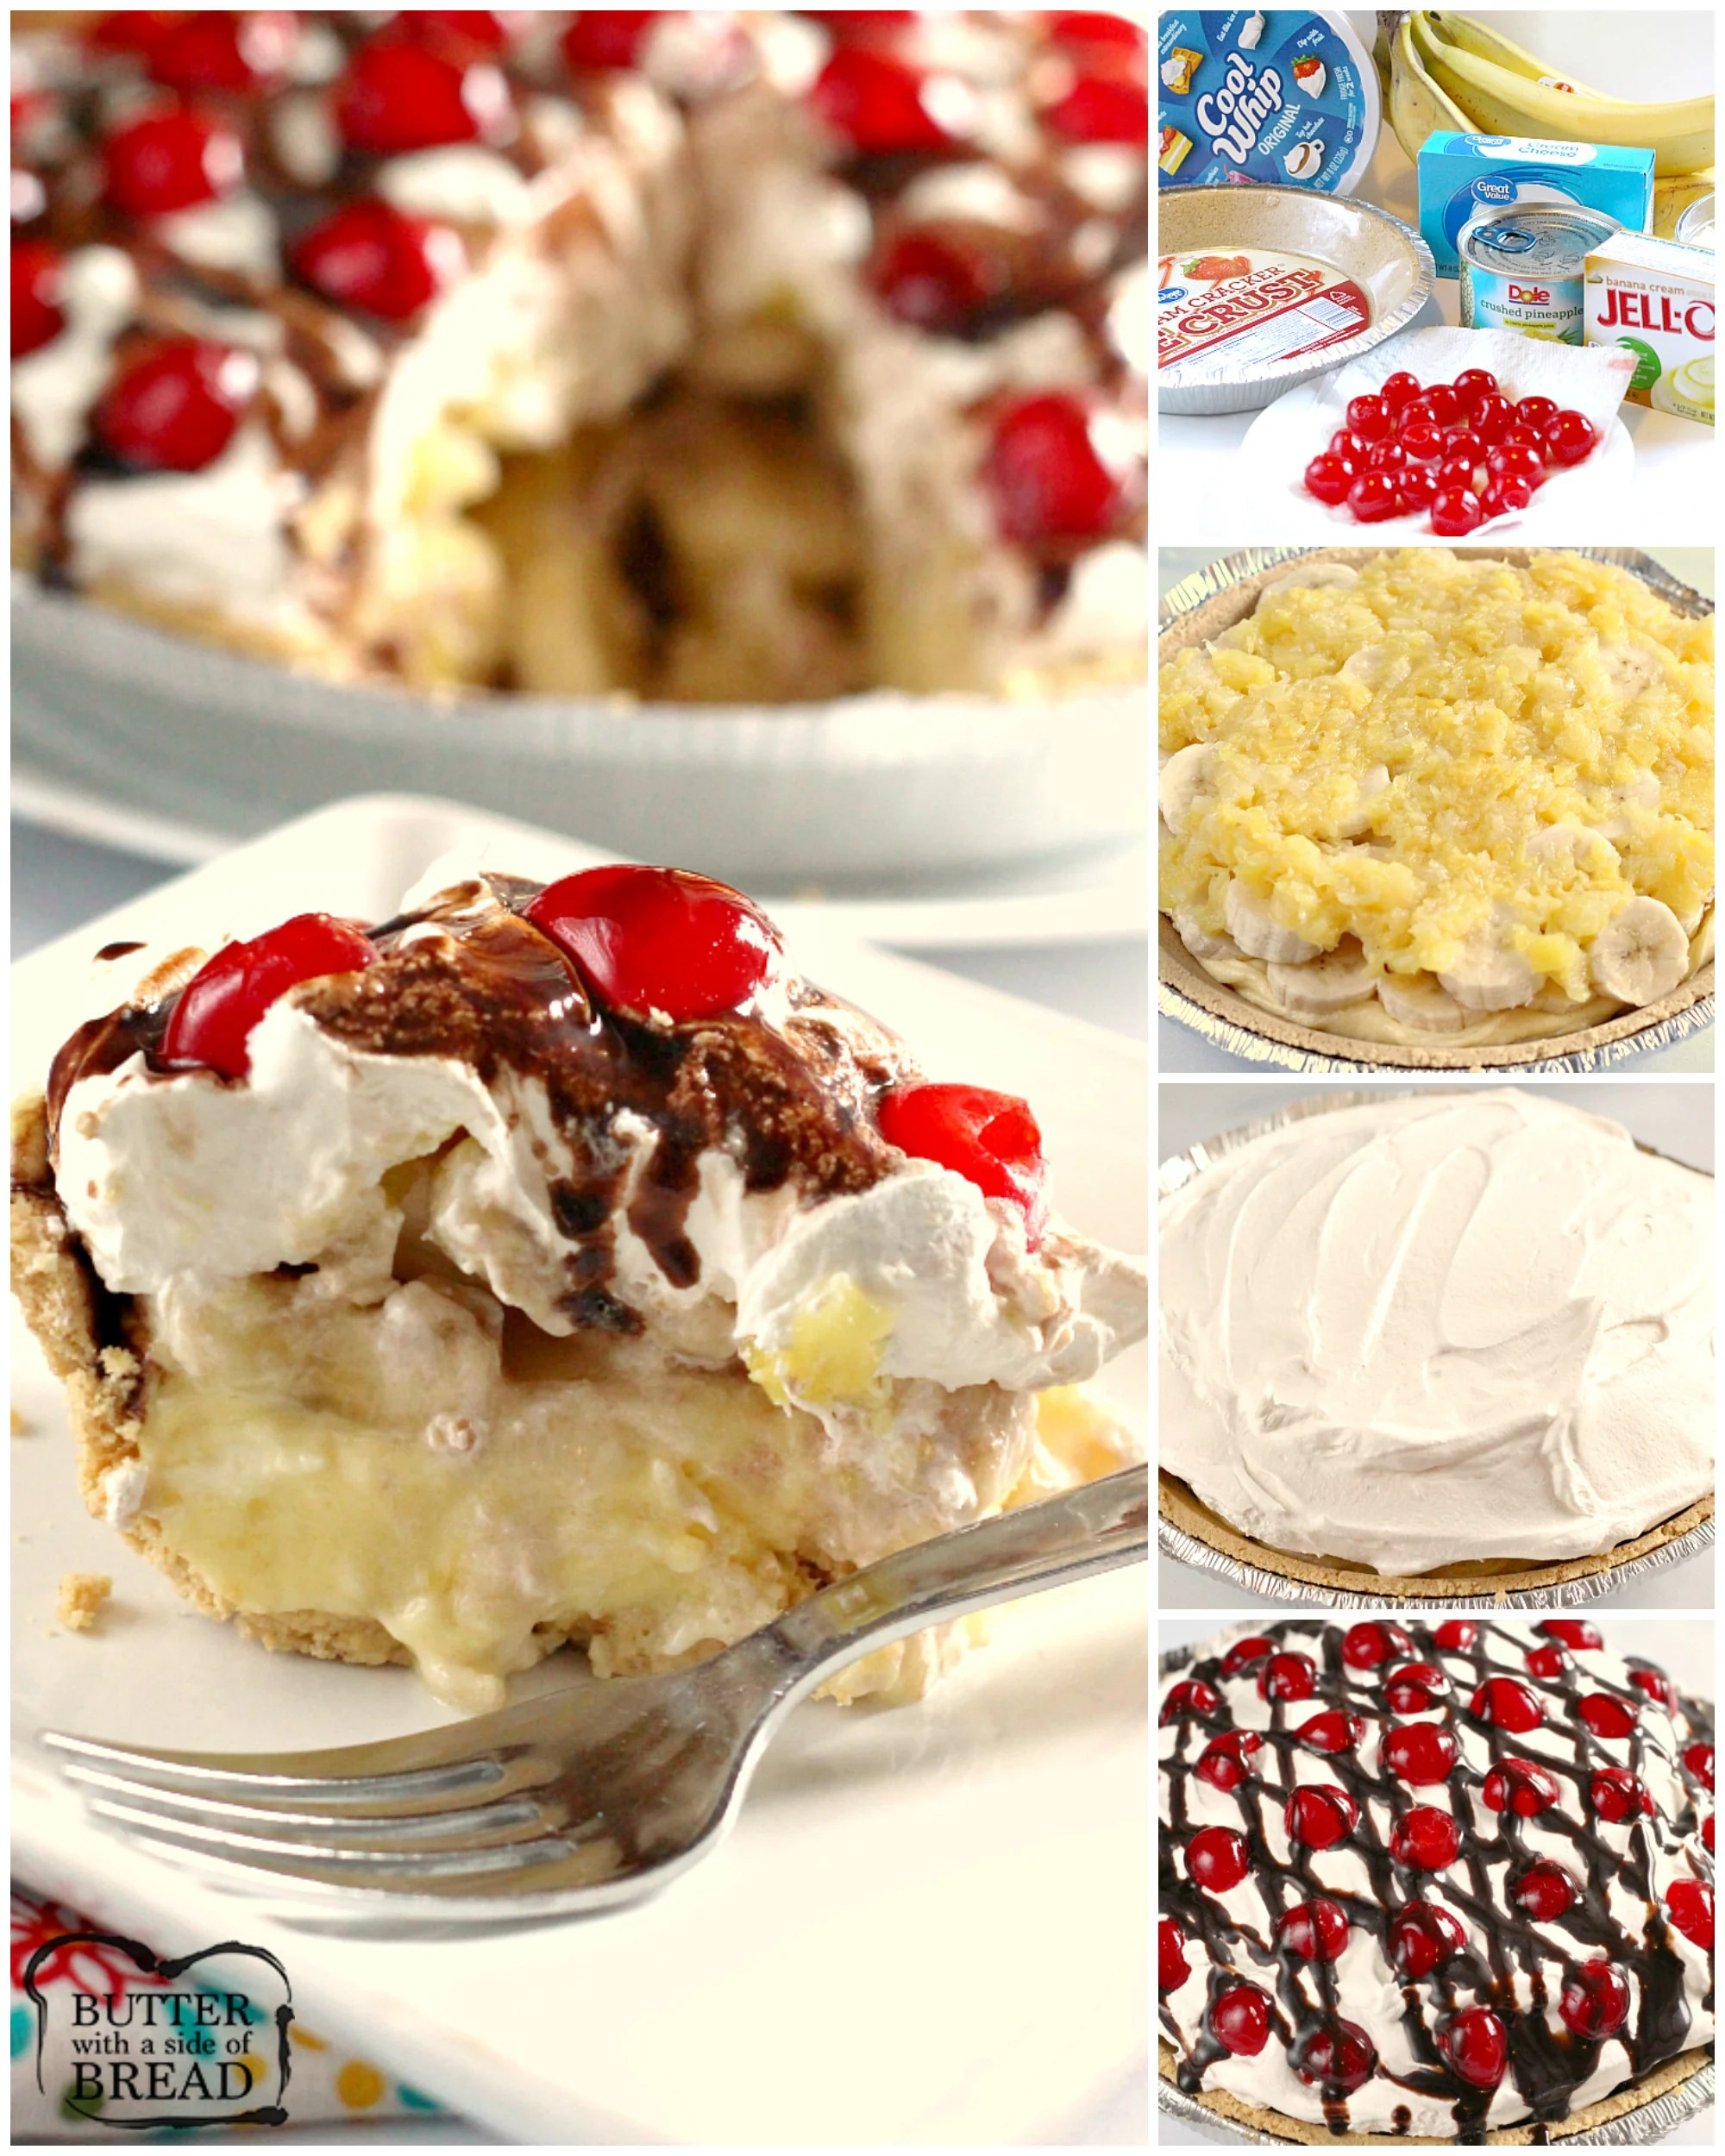 Banana Split Pie is an easy no-bake dessert made with a graham cracker pie crust full of cream cheese, bananas, whipped cream, pineapple, chocolate syrup and cherries. A refreshing banana split dessert that is easy to make and serve!